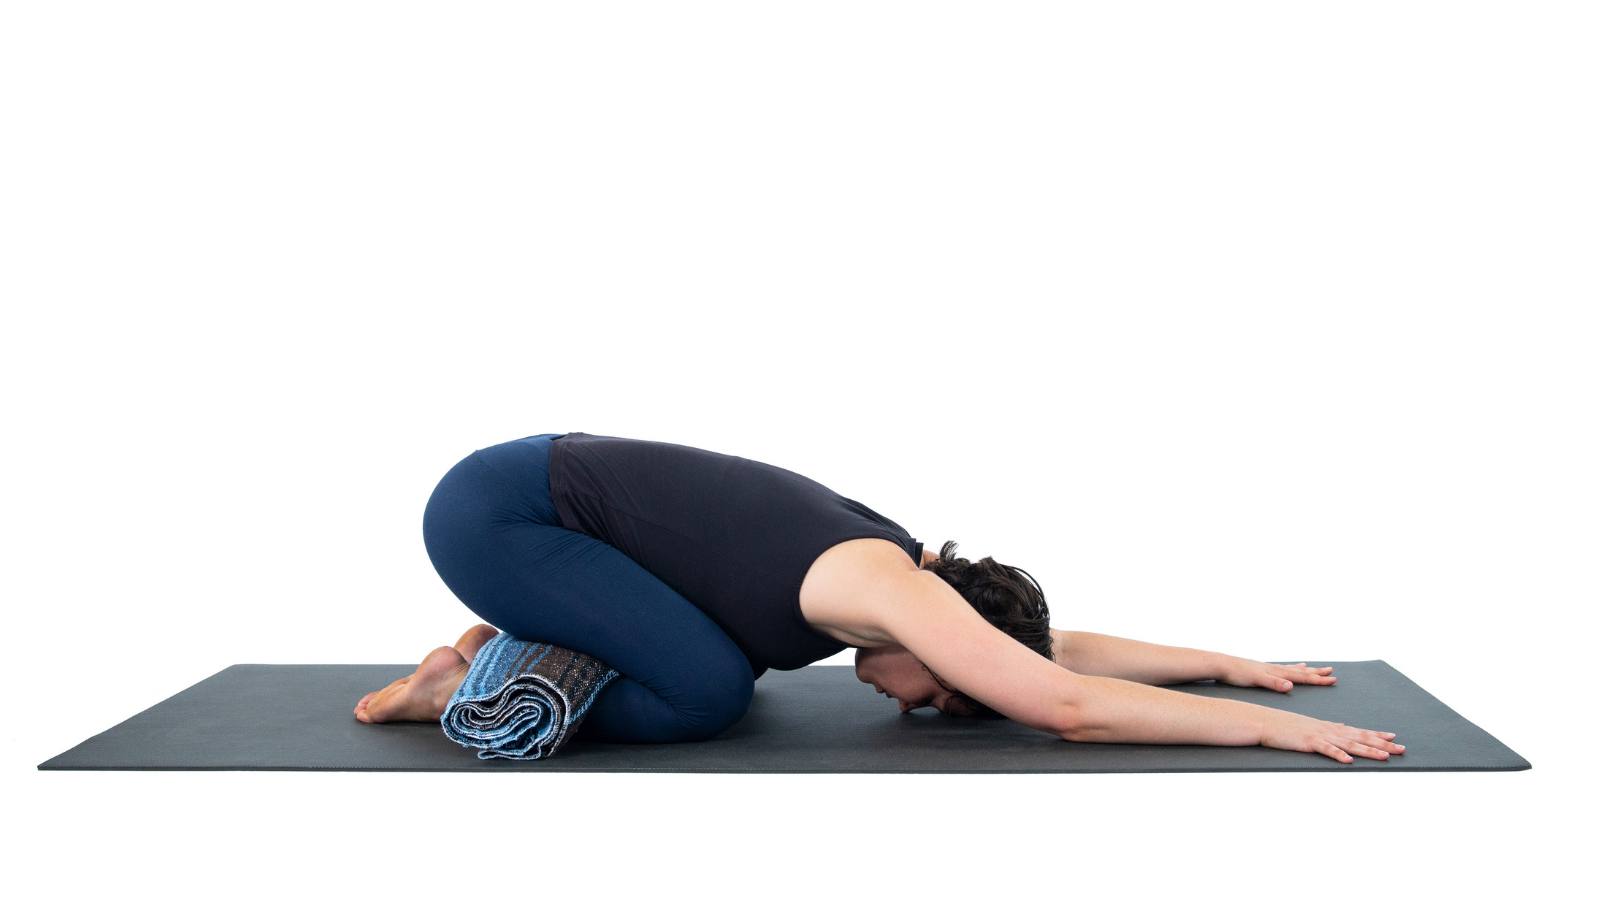 Child's Pose or Balasana a mild resting pose to help in the process of opening the heart chakra